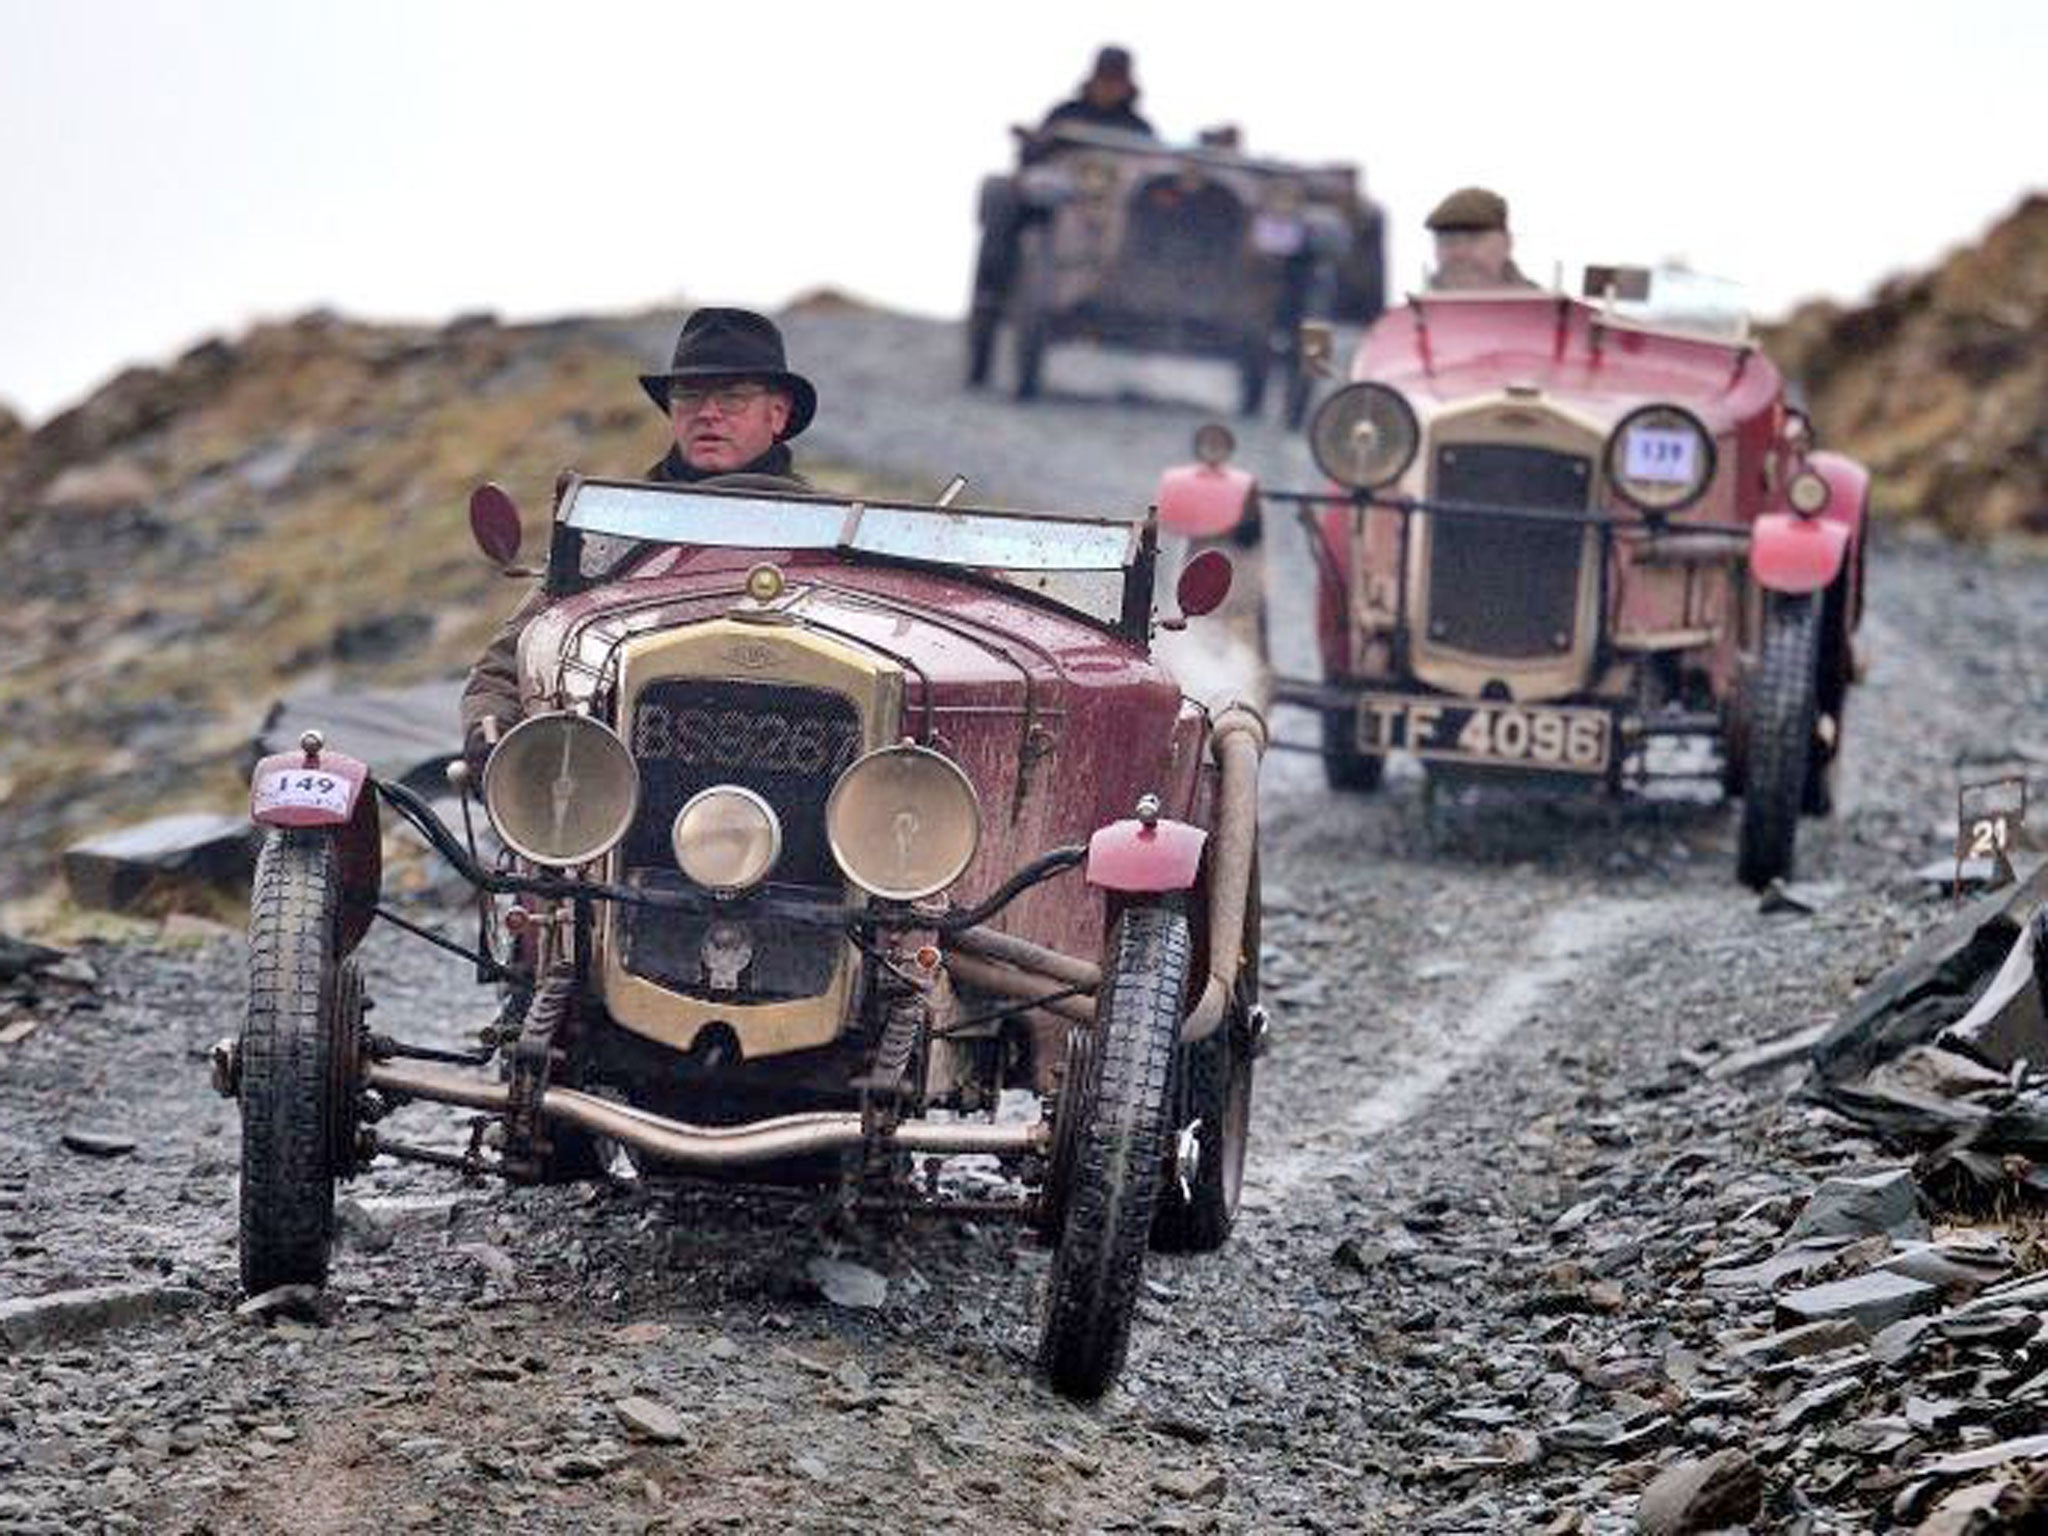 In pictures: Vintage Car Rally in Cumbria | The Independent